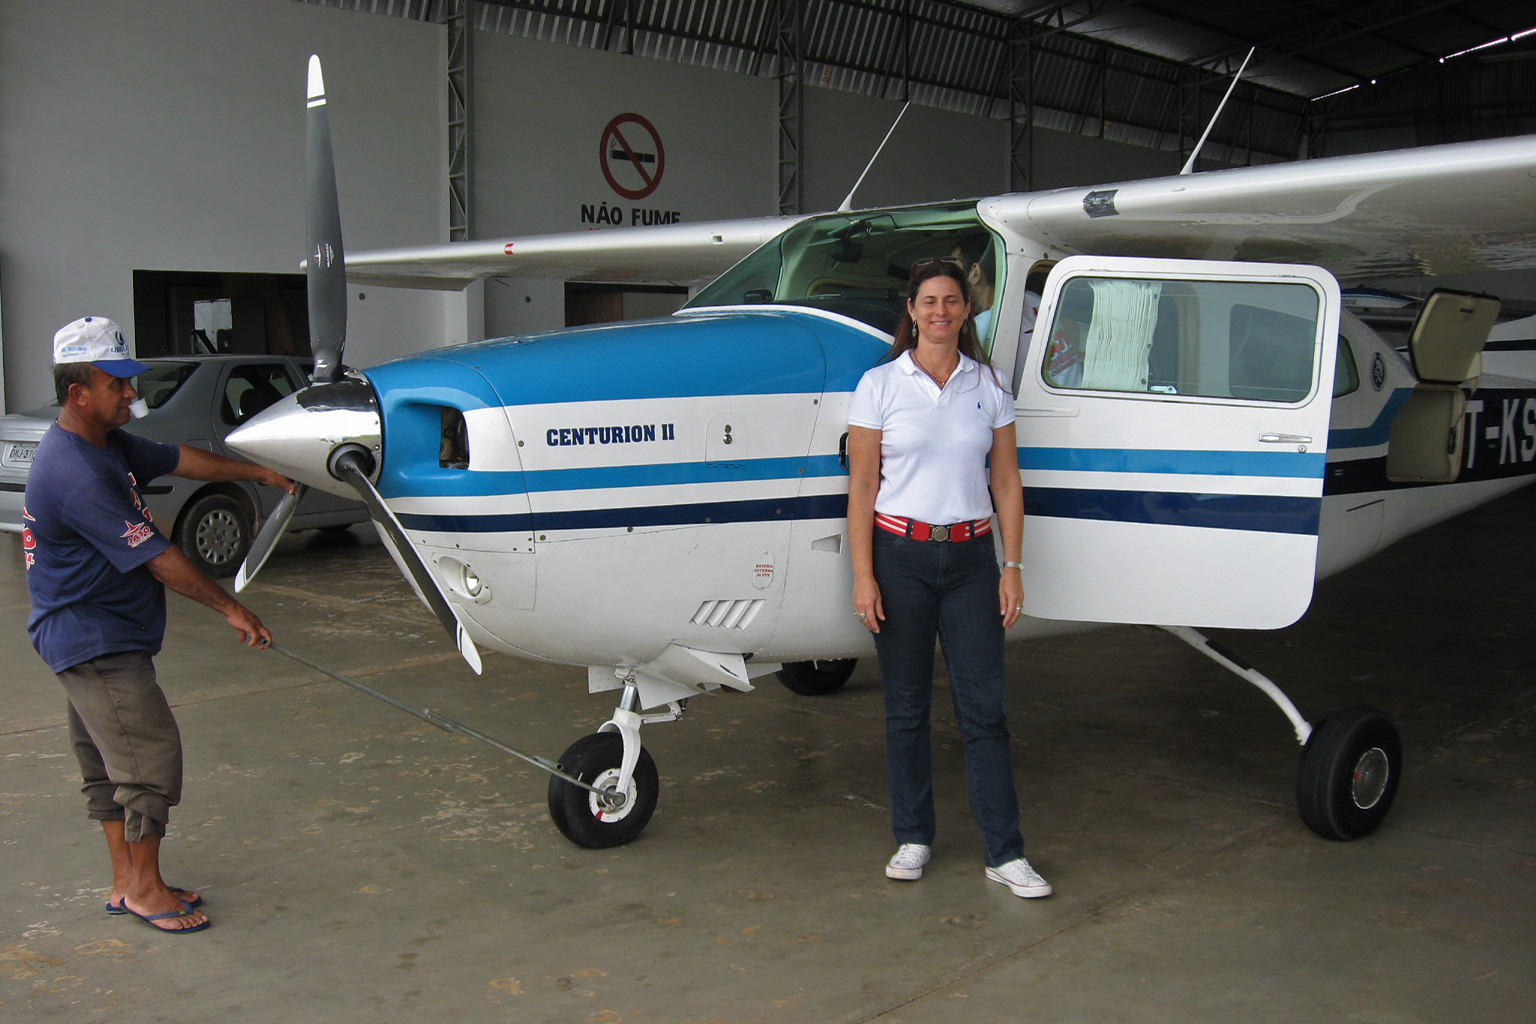 Luciana Gatti and colleagues used this small aircraft to measure carbon and atmospheric gasses above four locations over the Amazon. Photo courtesy of Luciana Gatti.